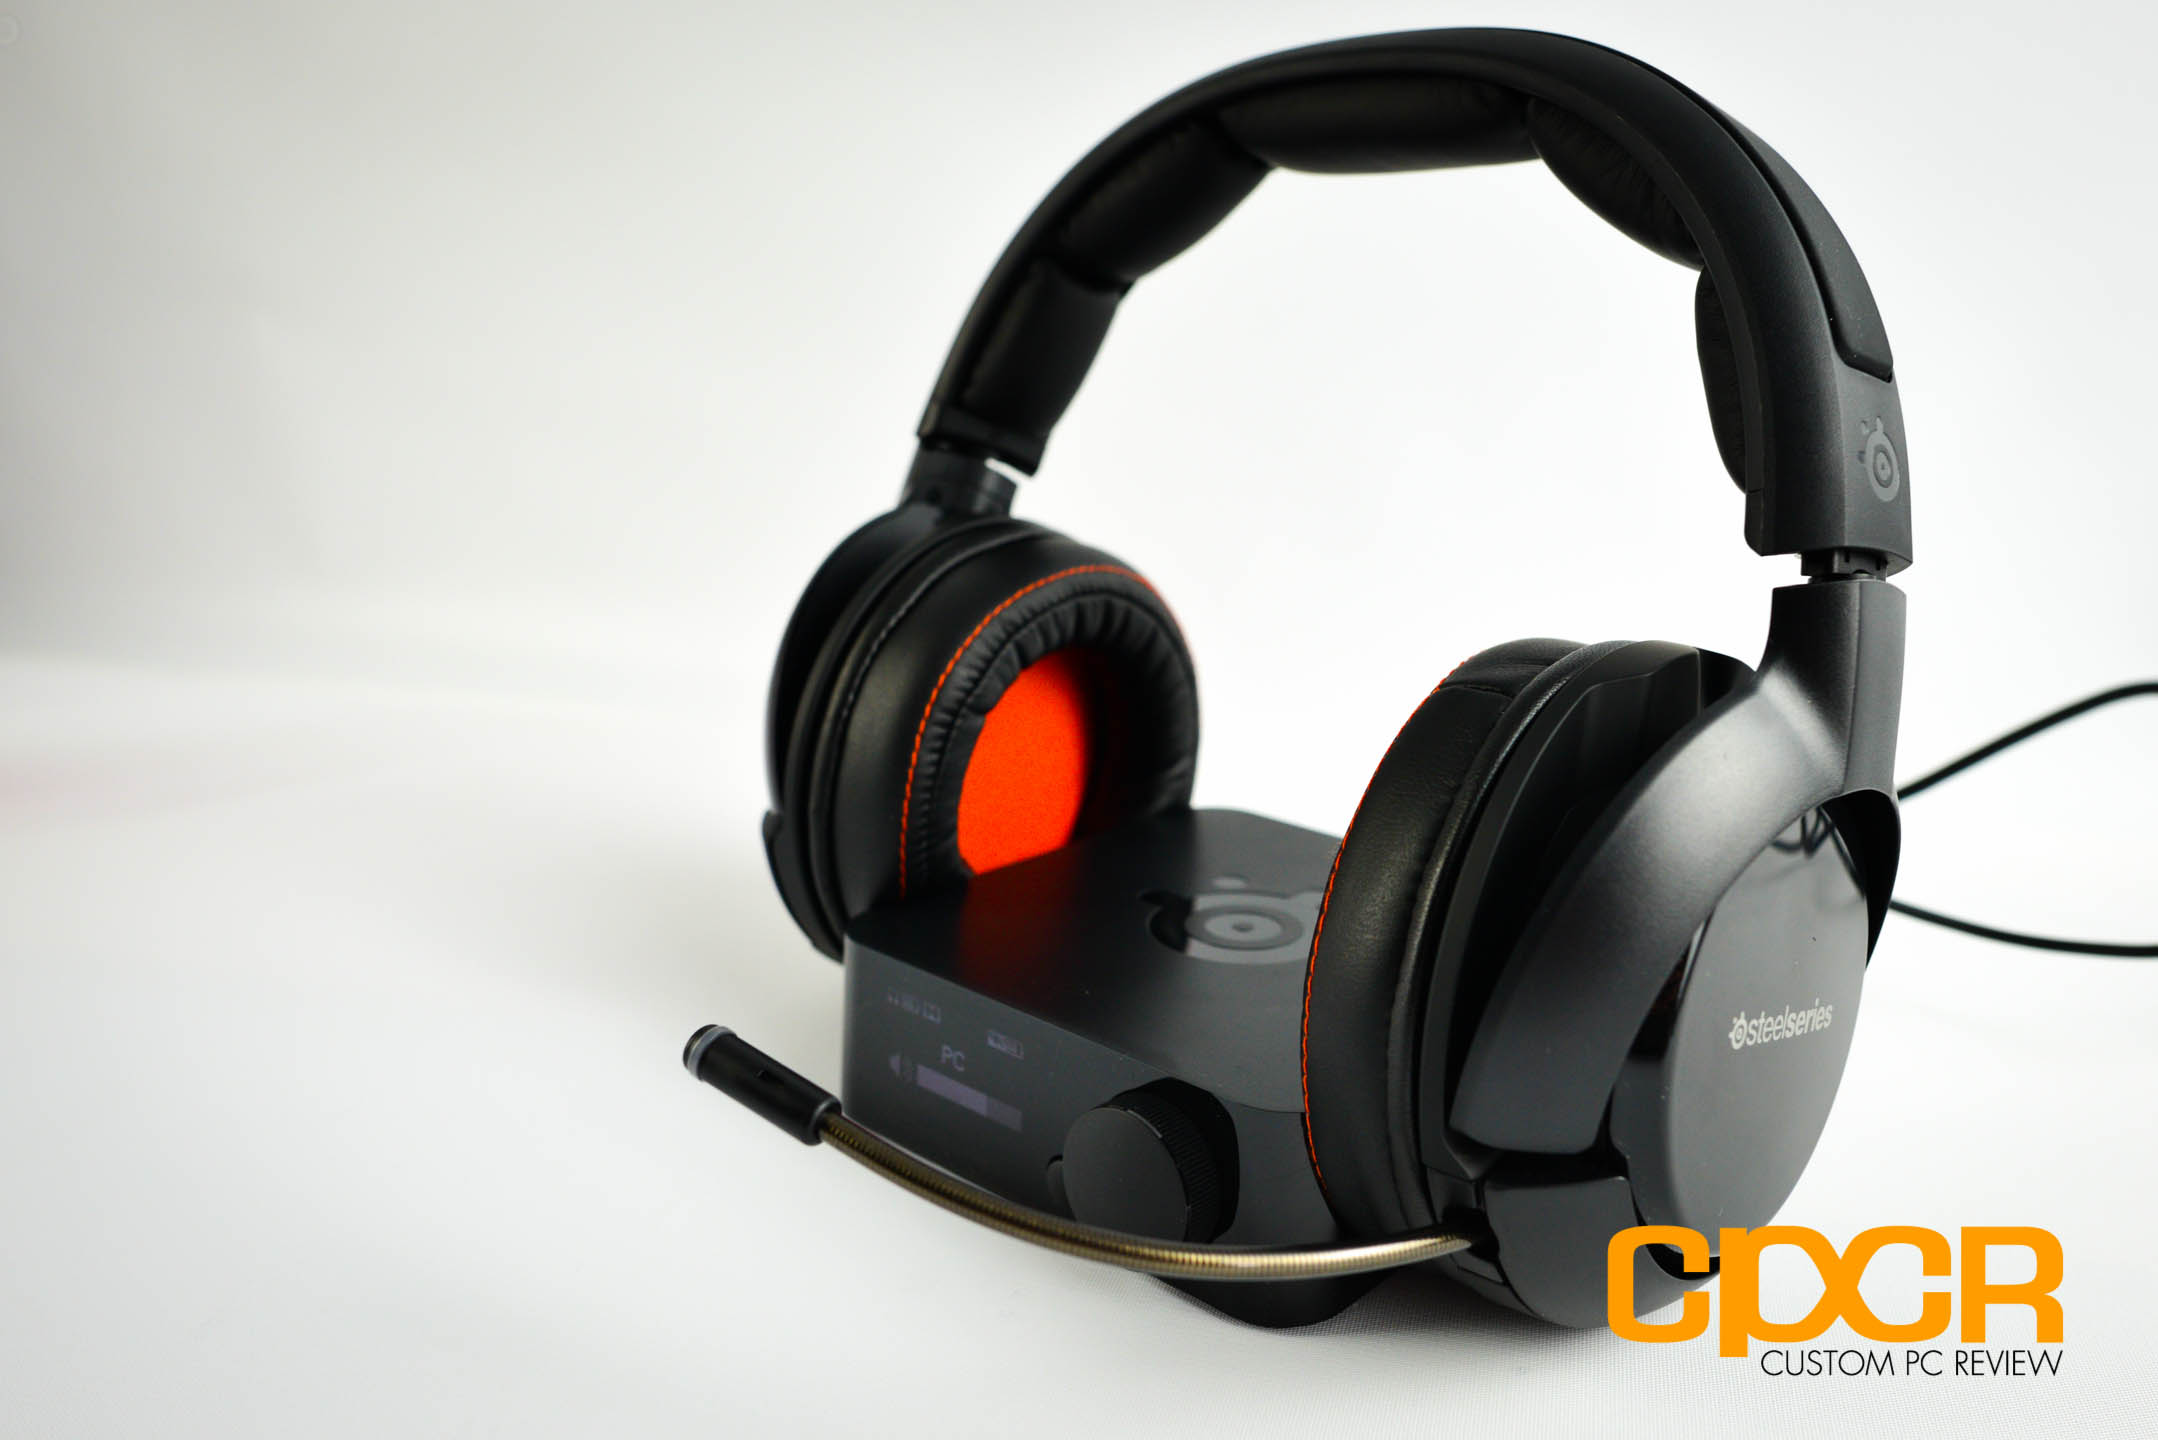 steelseries h wireless gaming headset manual